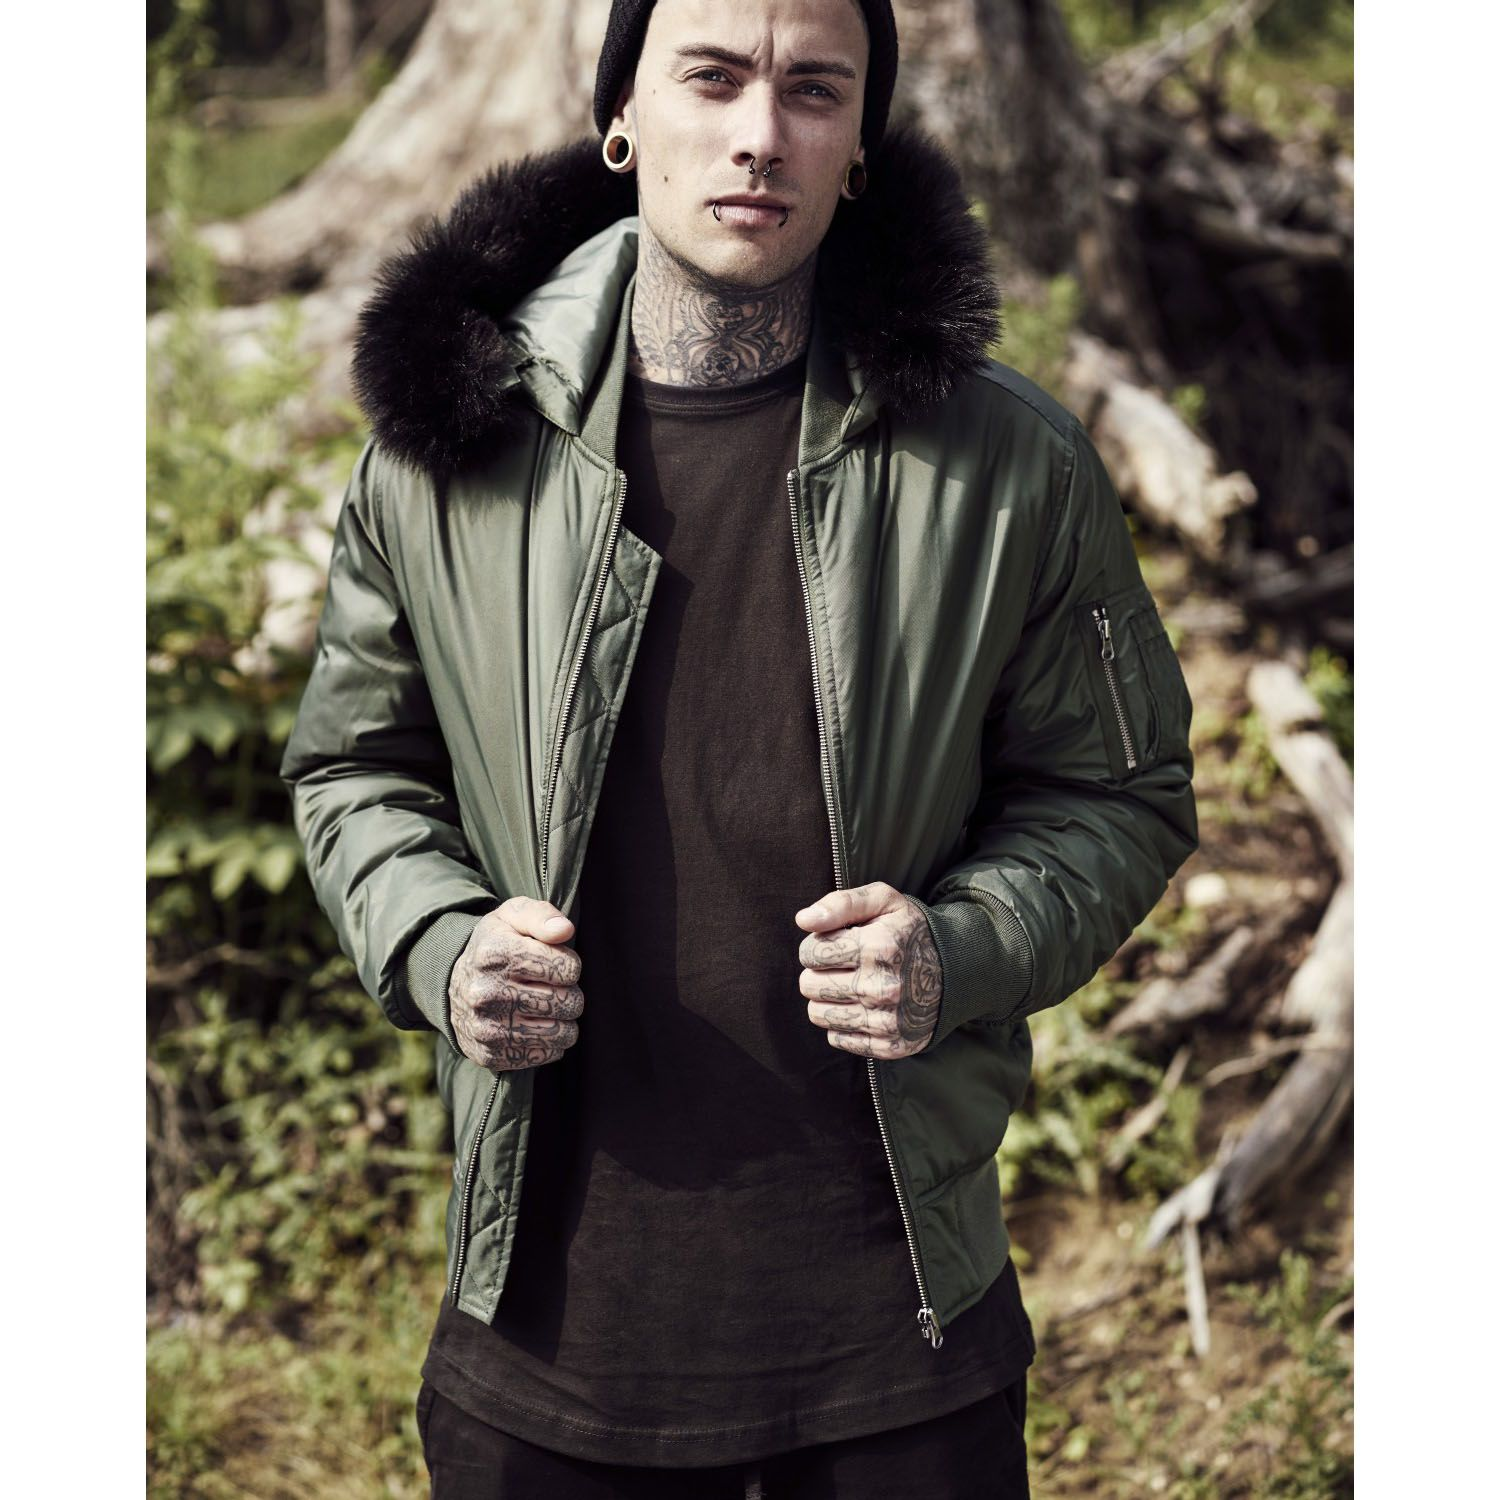 Hooded Basic Bomber Jacket Urban Classics Streetwear Men XXL Olive. About  this product. Picture 1 of 5  Picture 2 of 5  Picture 3 of 5 ... 9721560732d